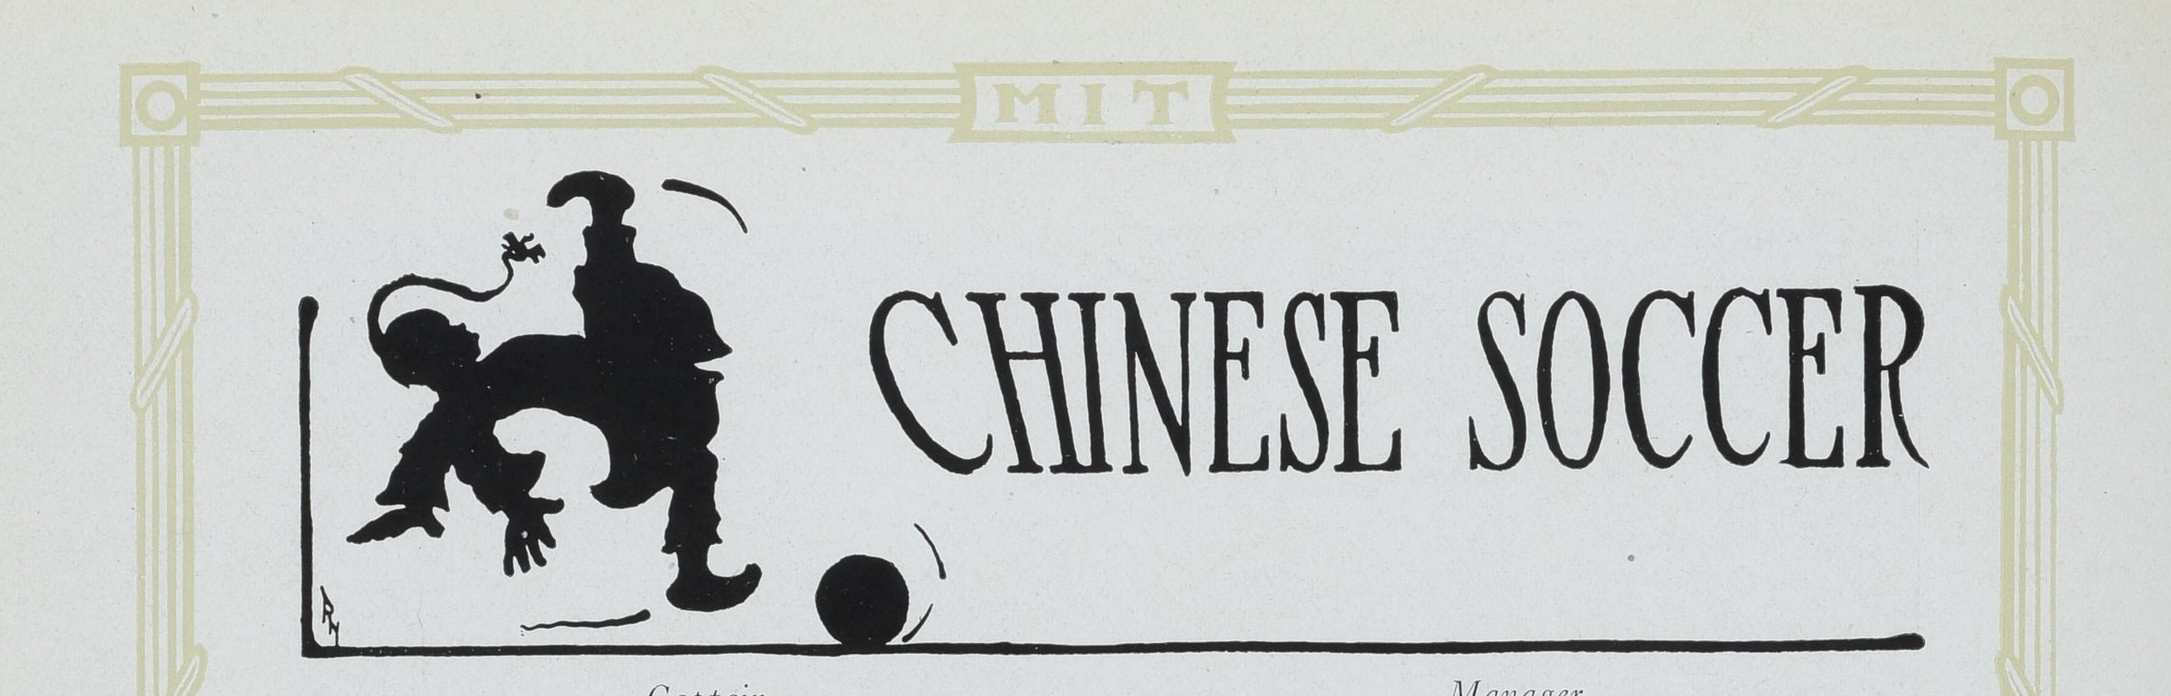 """Caricature mocking """"pigtailed"""" Chinese soccer players from MIT  Technique 1920 . Courtesy MIT Archives and Special Collections."""